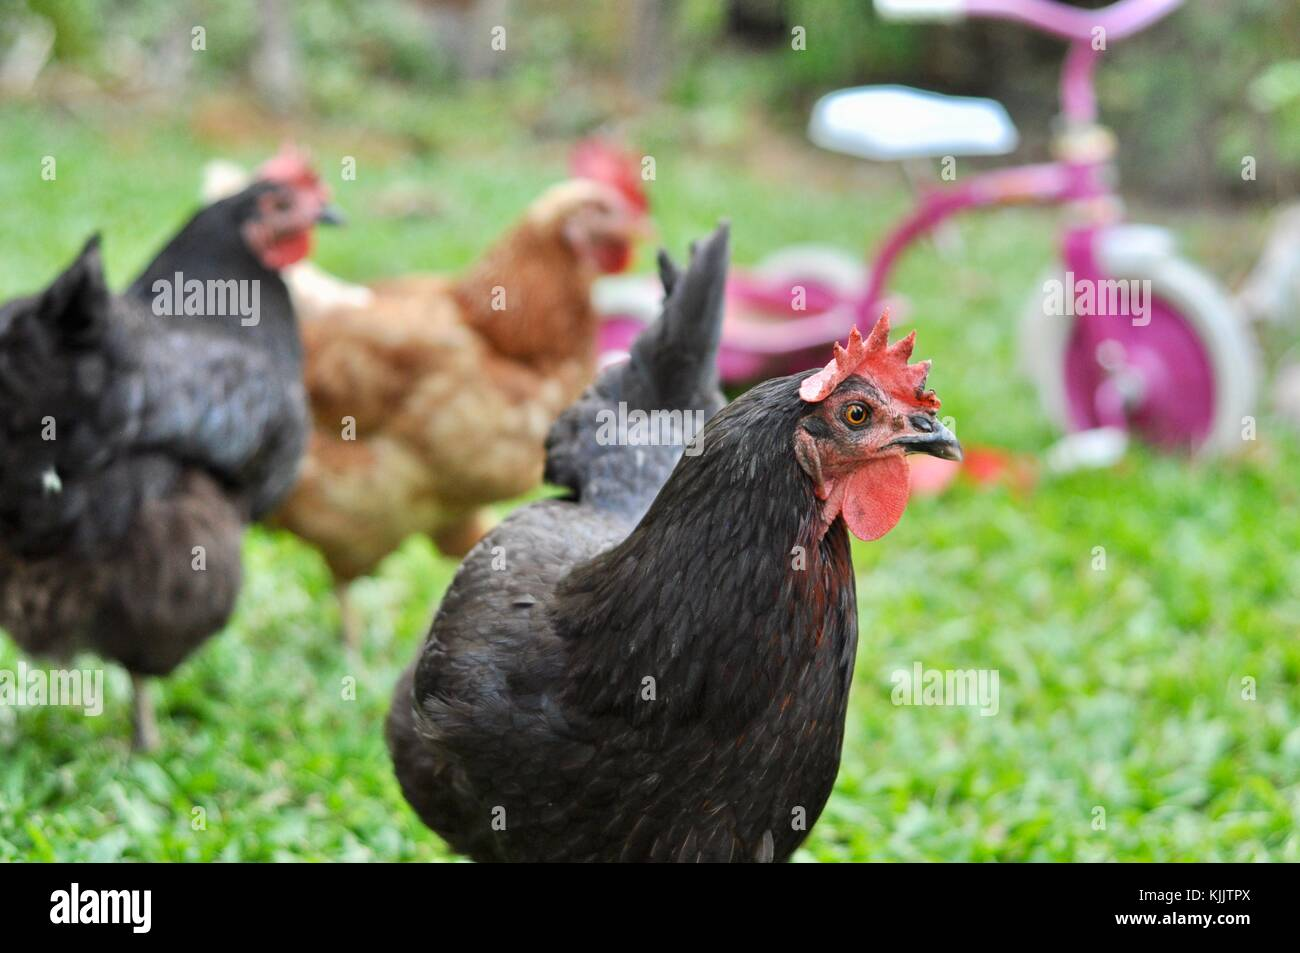 Domestic chickens in a suburban backyard, Sustainable living, Townsville, Queensland, Australia - Stock Image